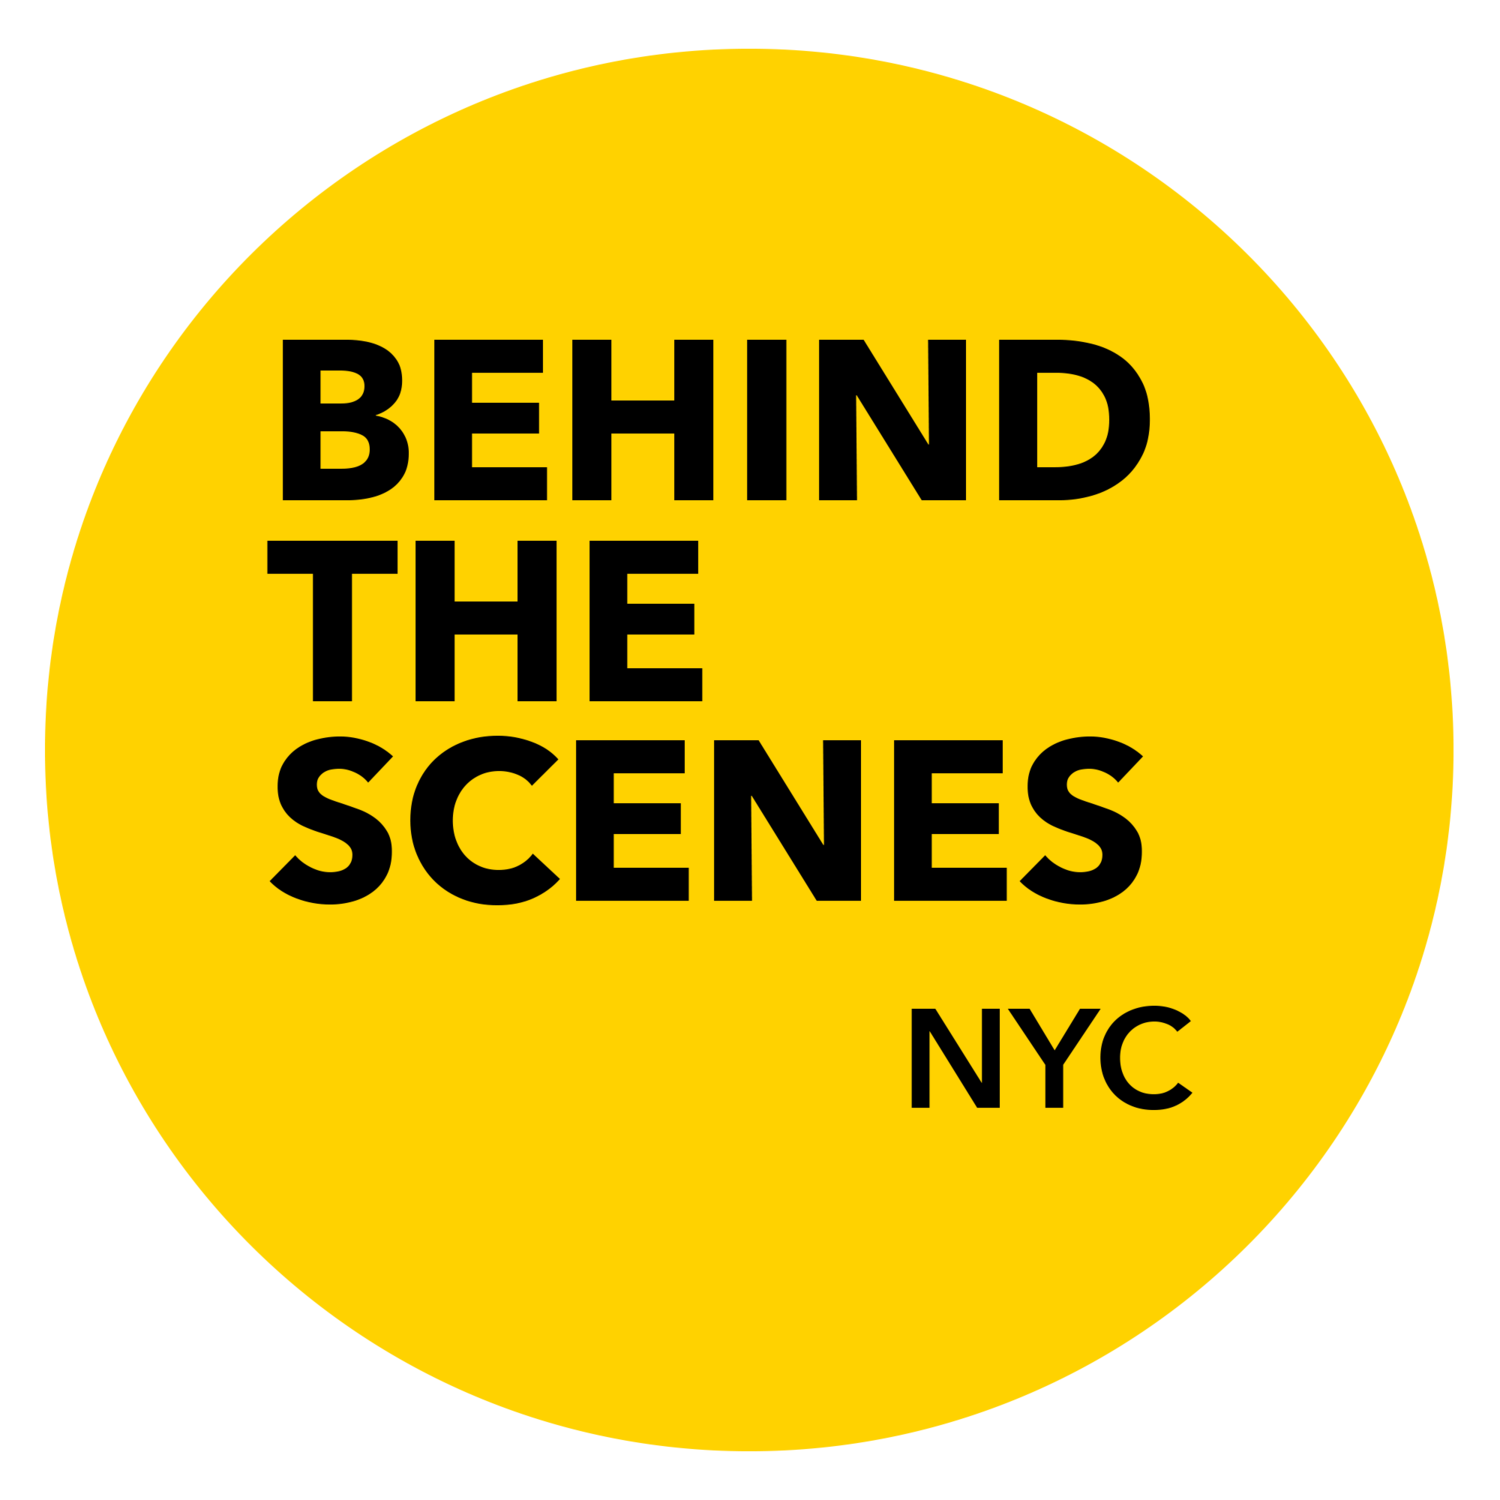 Behind the Scenes NYC - BTSNYC